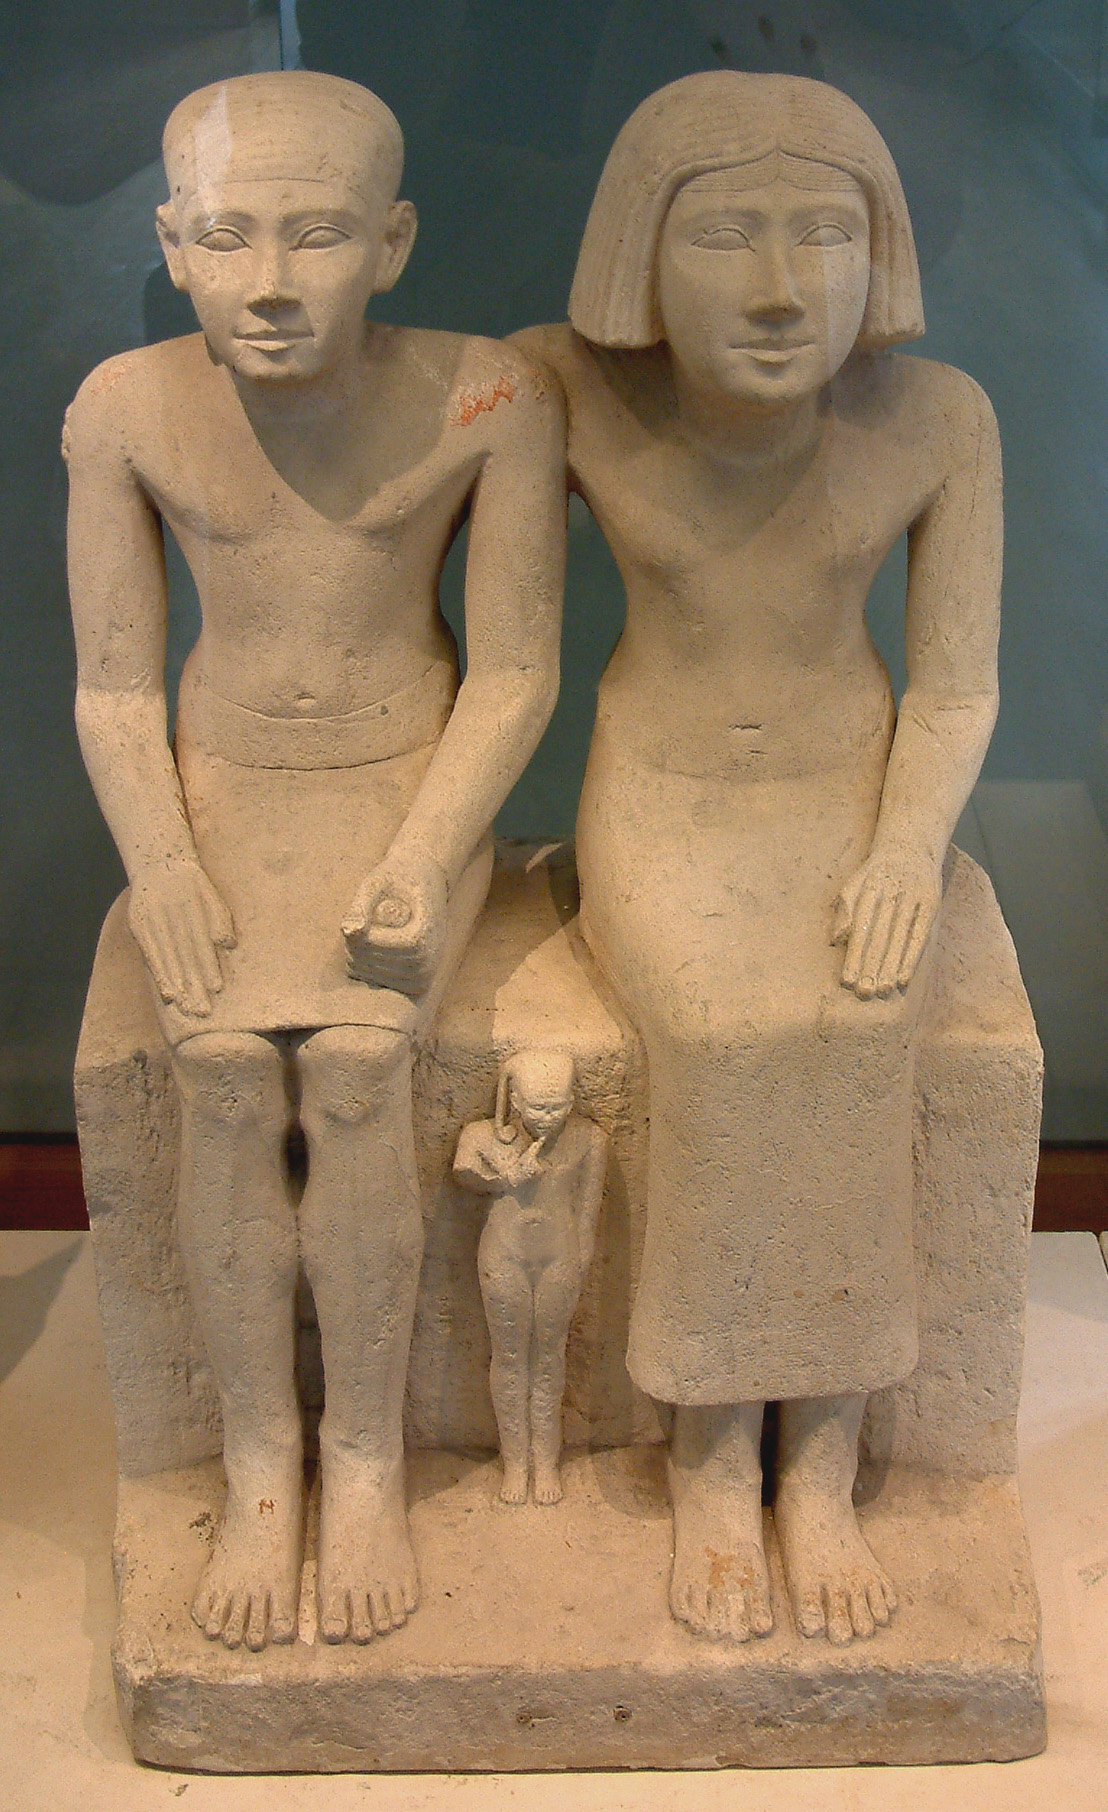 http://upload.wikimedia.org/wikipedia/commons/7/74/Egypte_louvre_288_couple.jpg